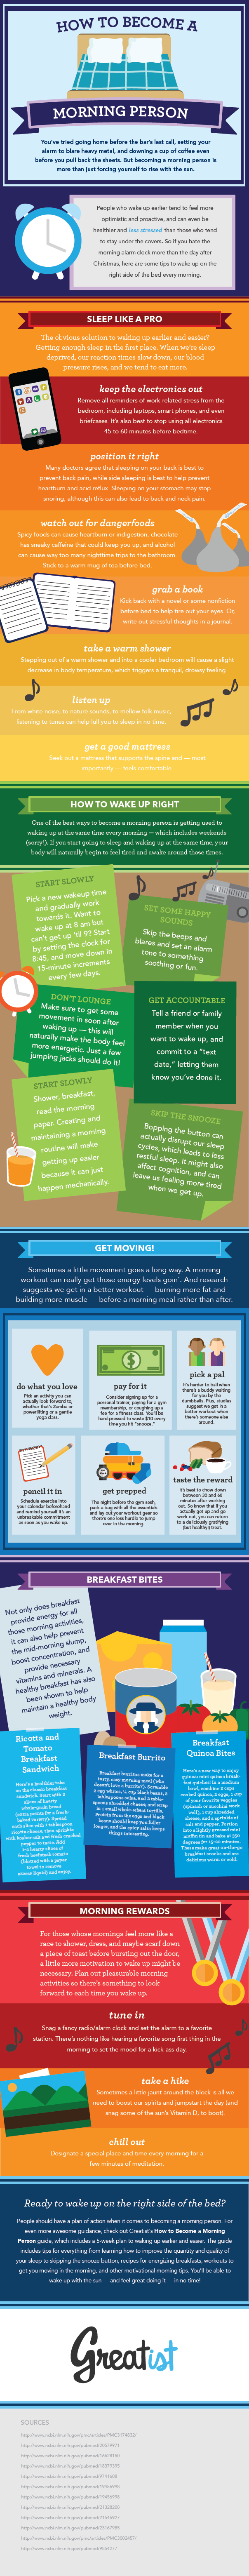 Morning Person Infographic-01_0